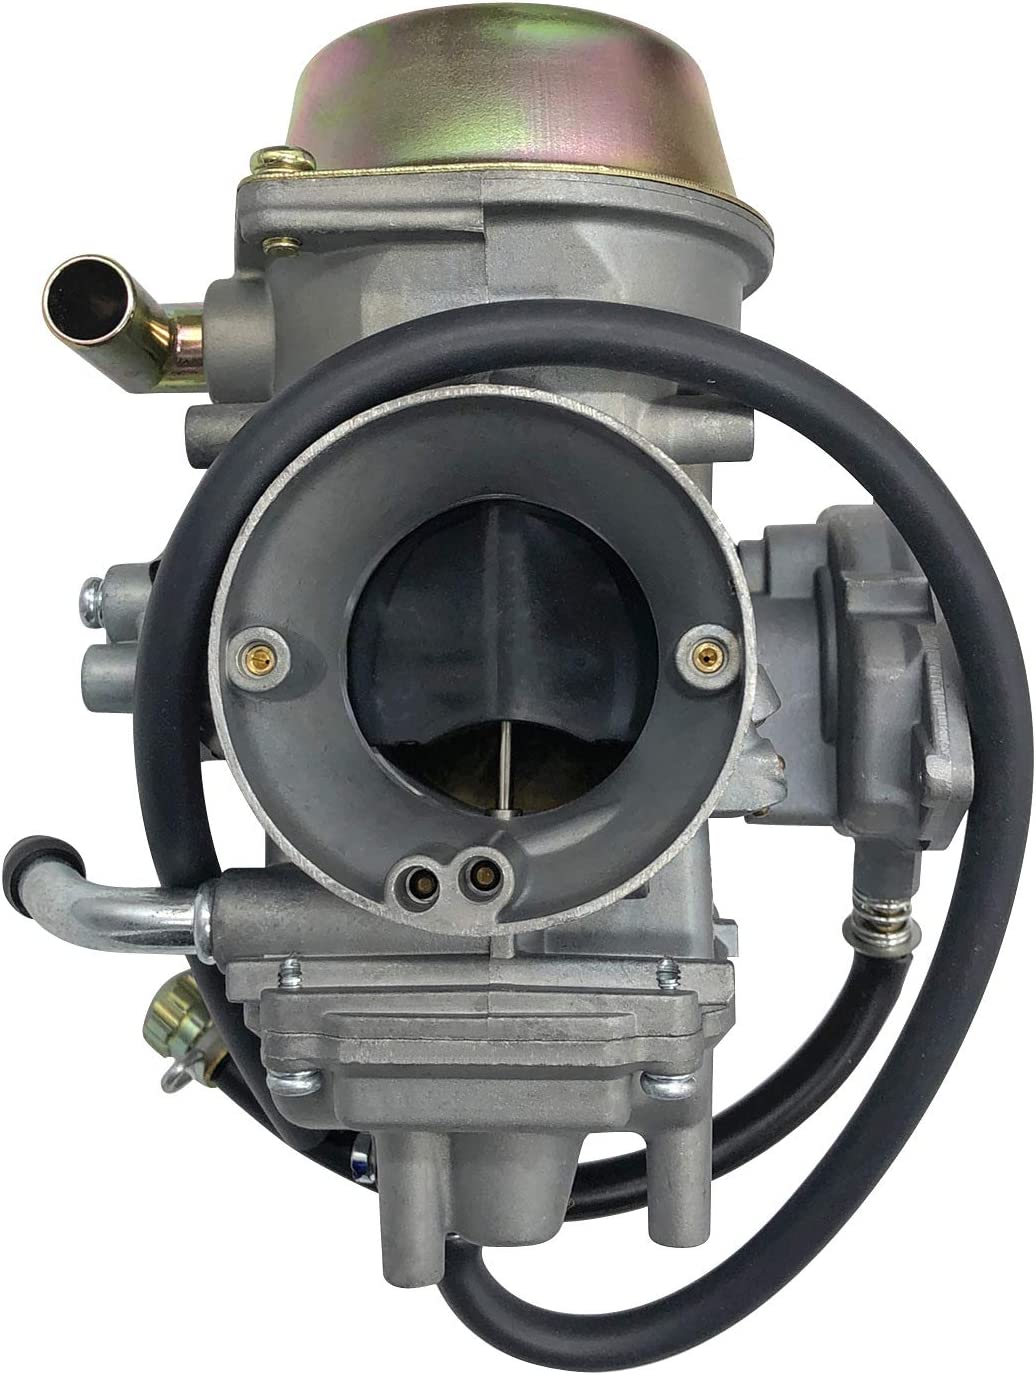 Carburetor For John Deere Trail Buck Buck 650 2004 2005 2006